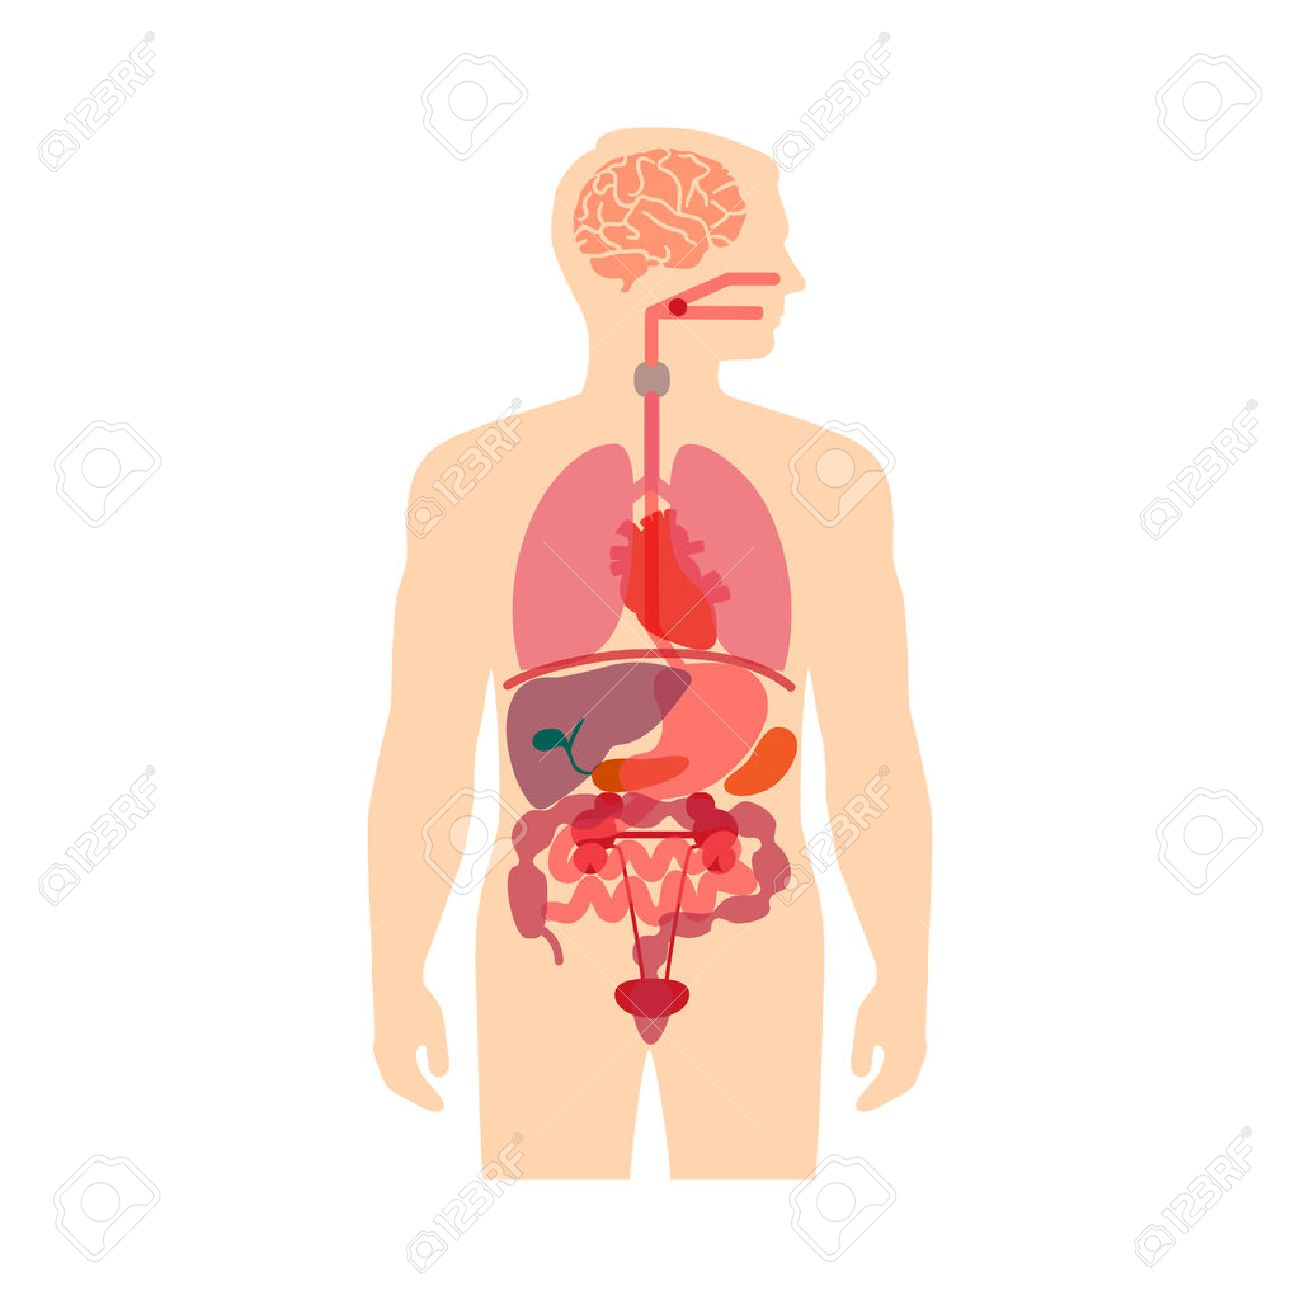 Human Body Anatomy Medical Organs Vector System Royalty Free